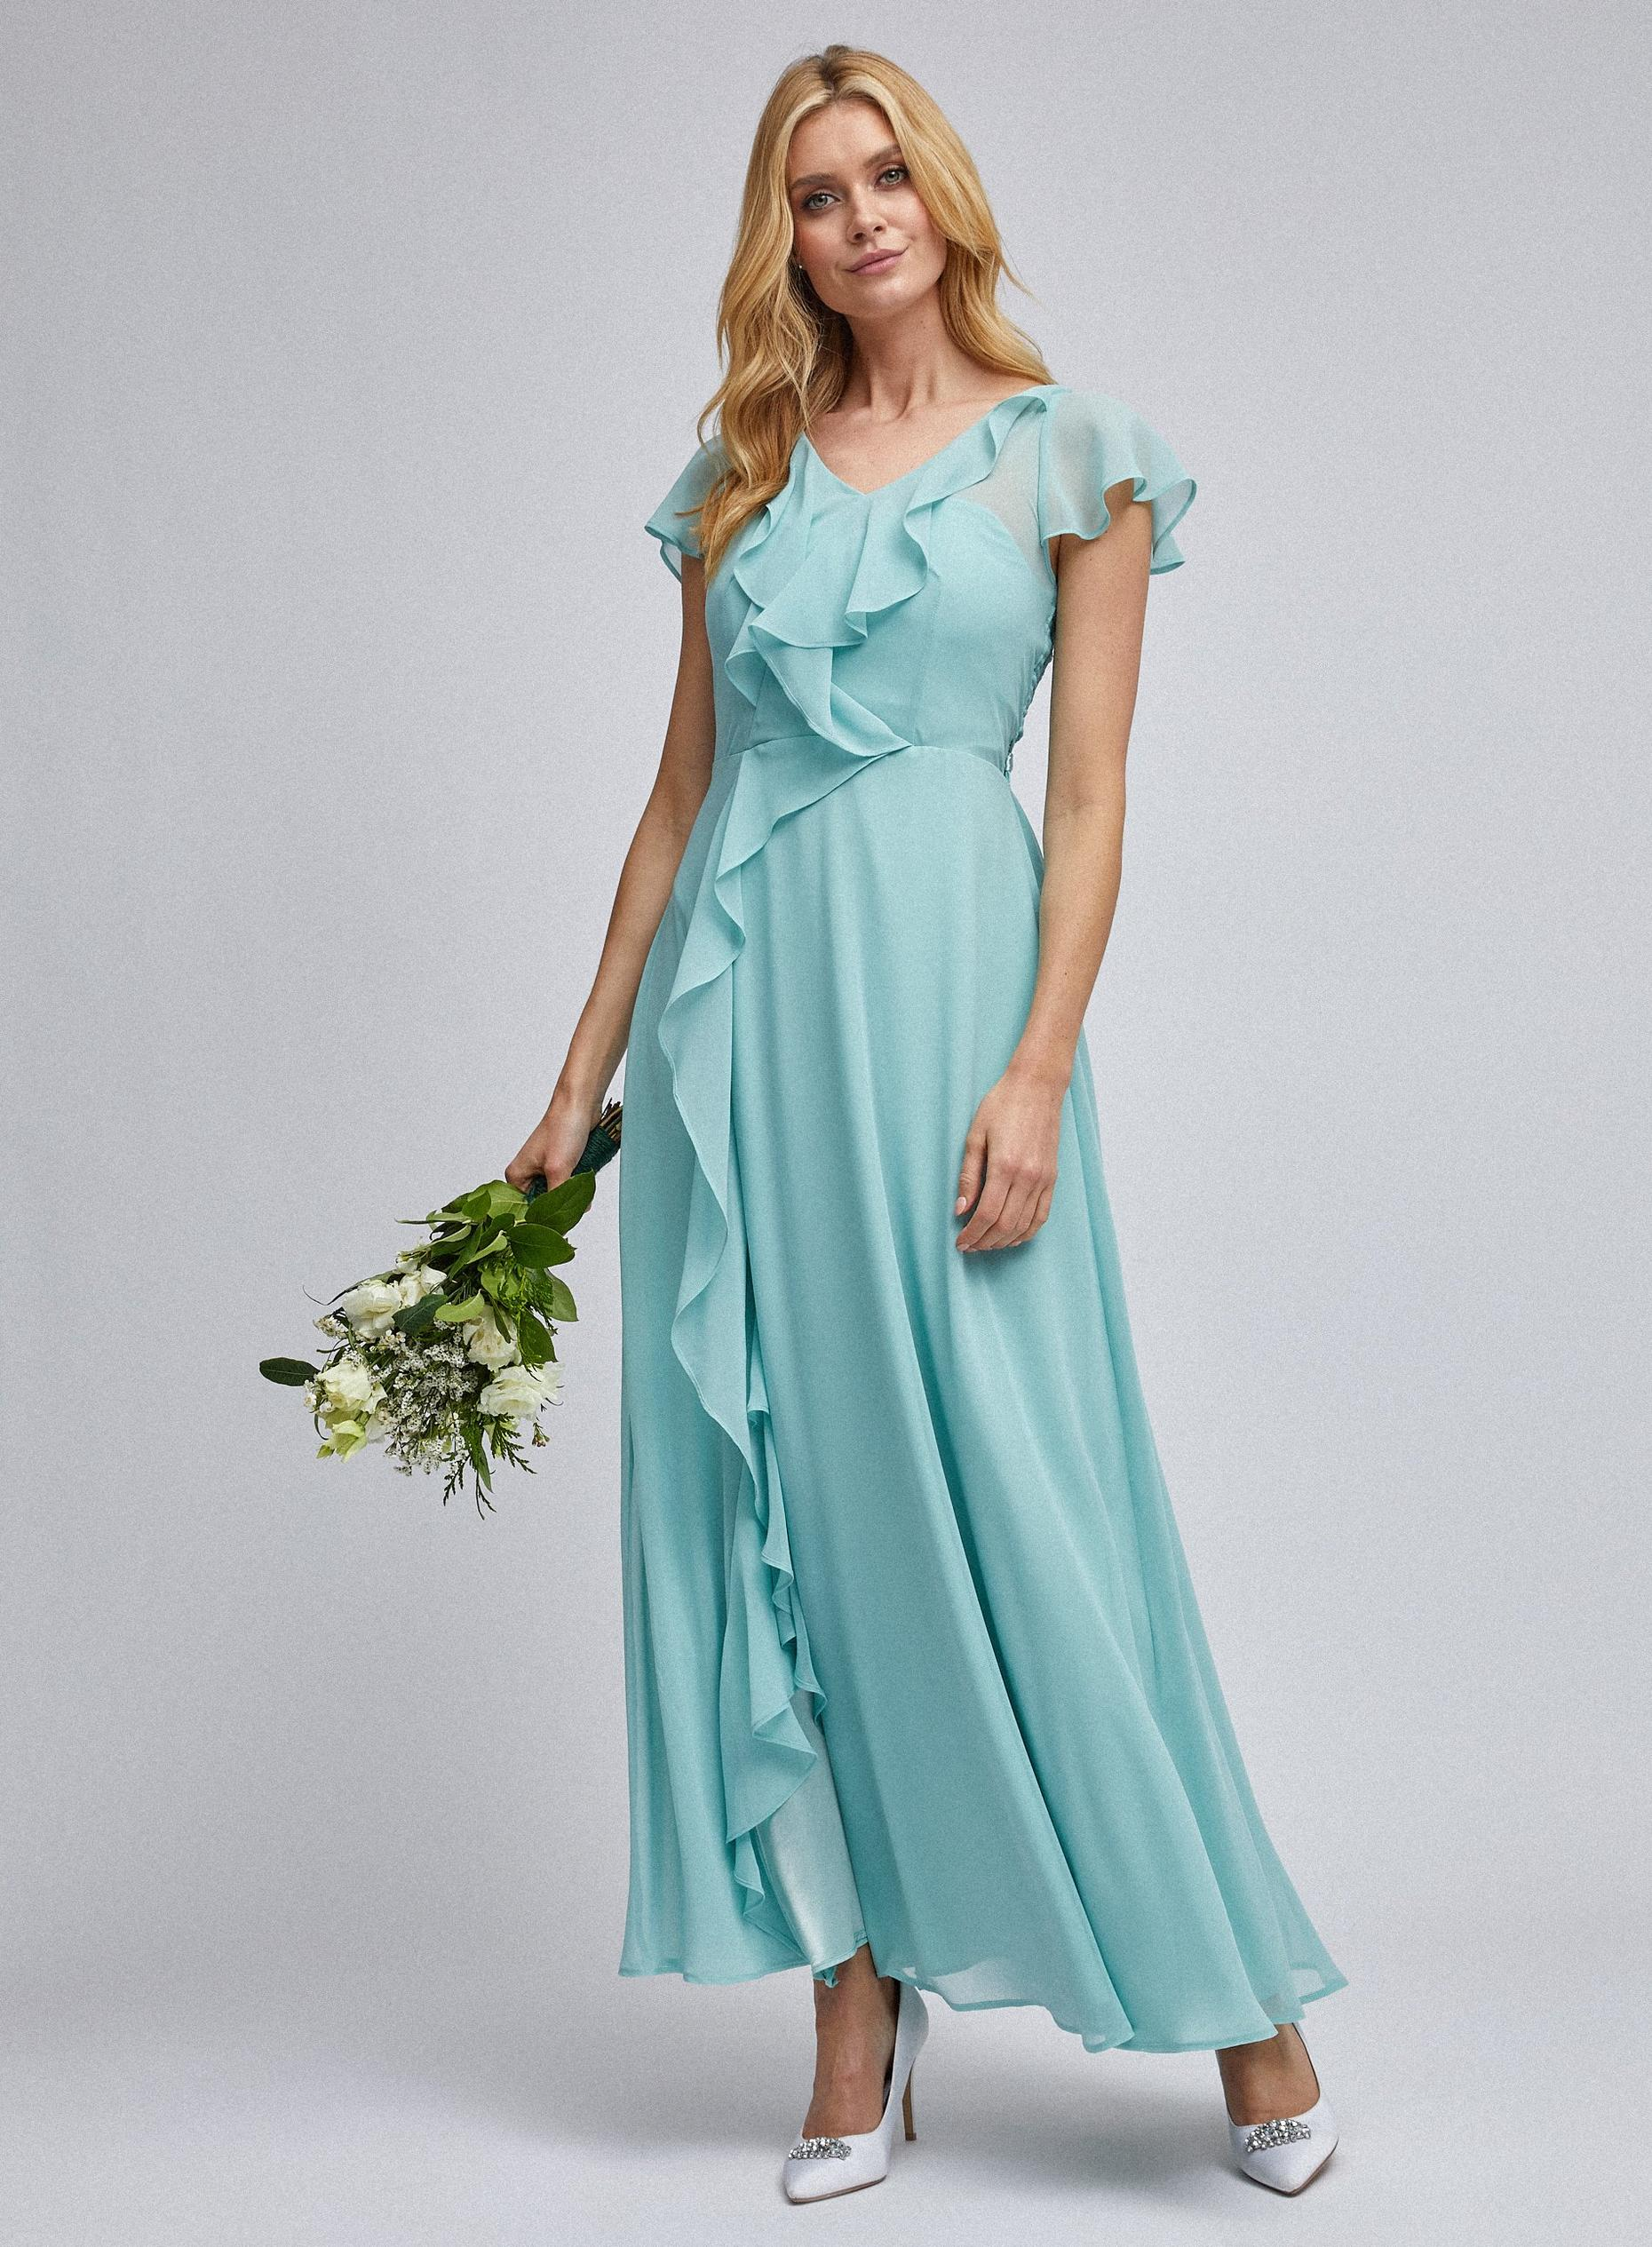 Bridesmiads Thyme Riley Ruffle Maxi Dress